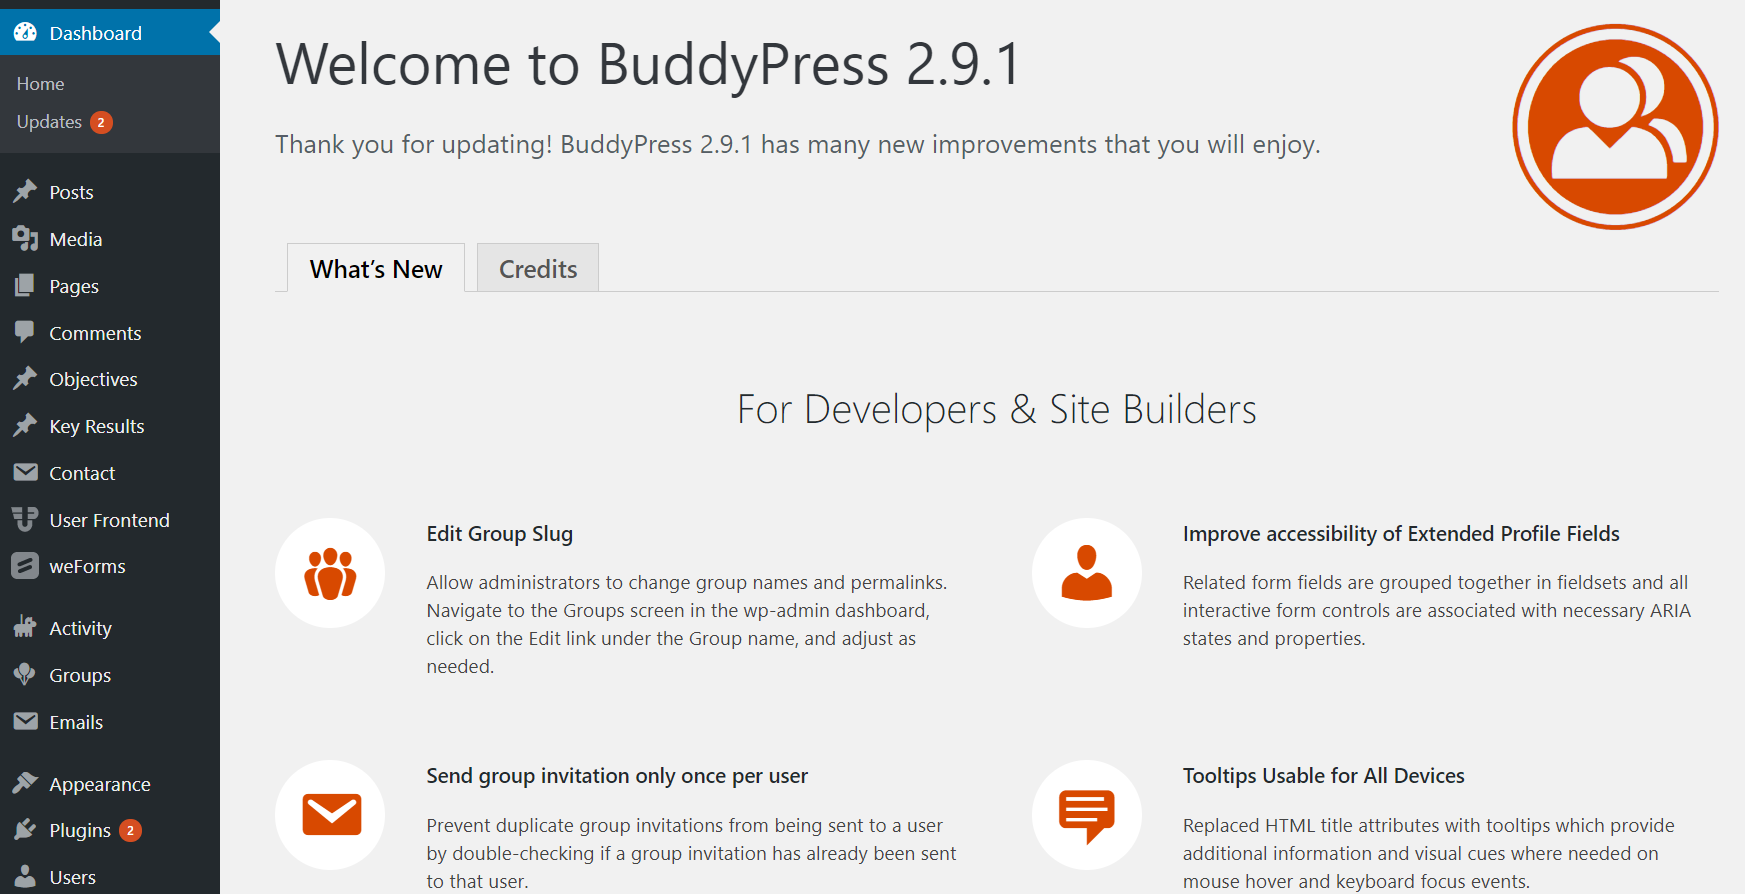 Social Networking Site Using BuddyPress